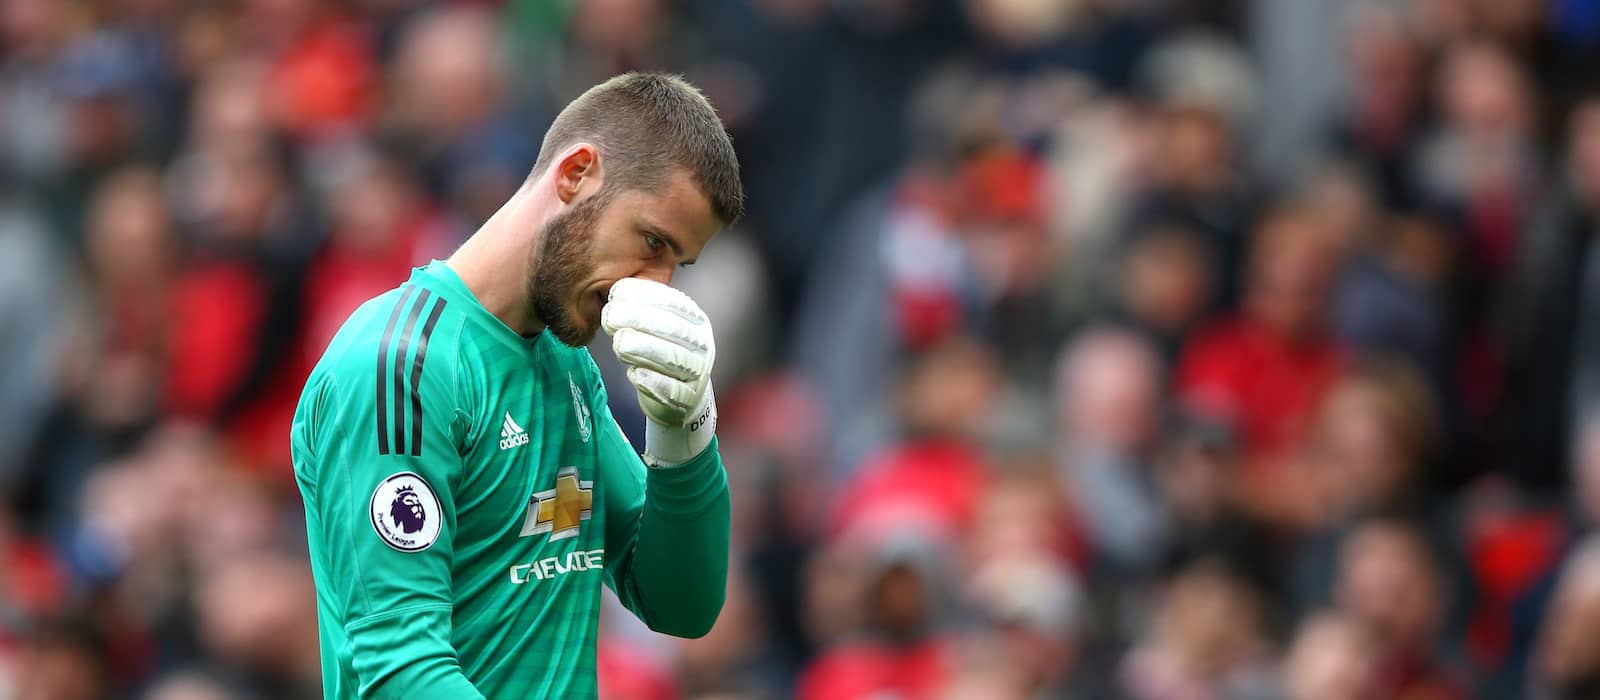 Edwin van der Sar sends warning to David de Gea over uncertain future